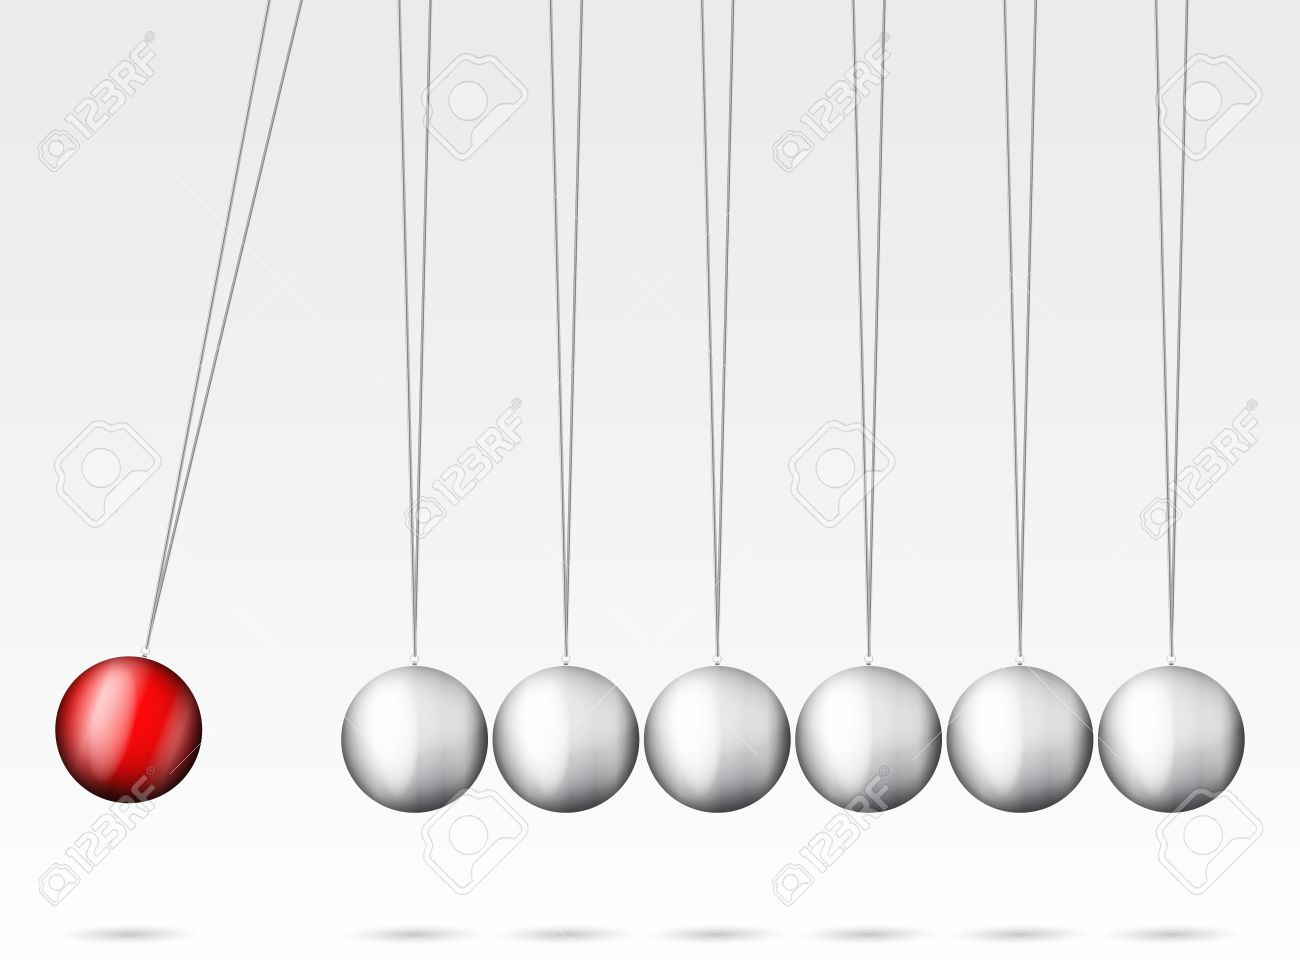 Balancing Balls Newton's Cradle On A White Background. Royalty.